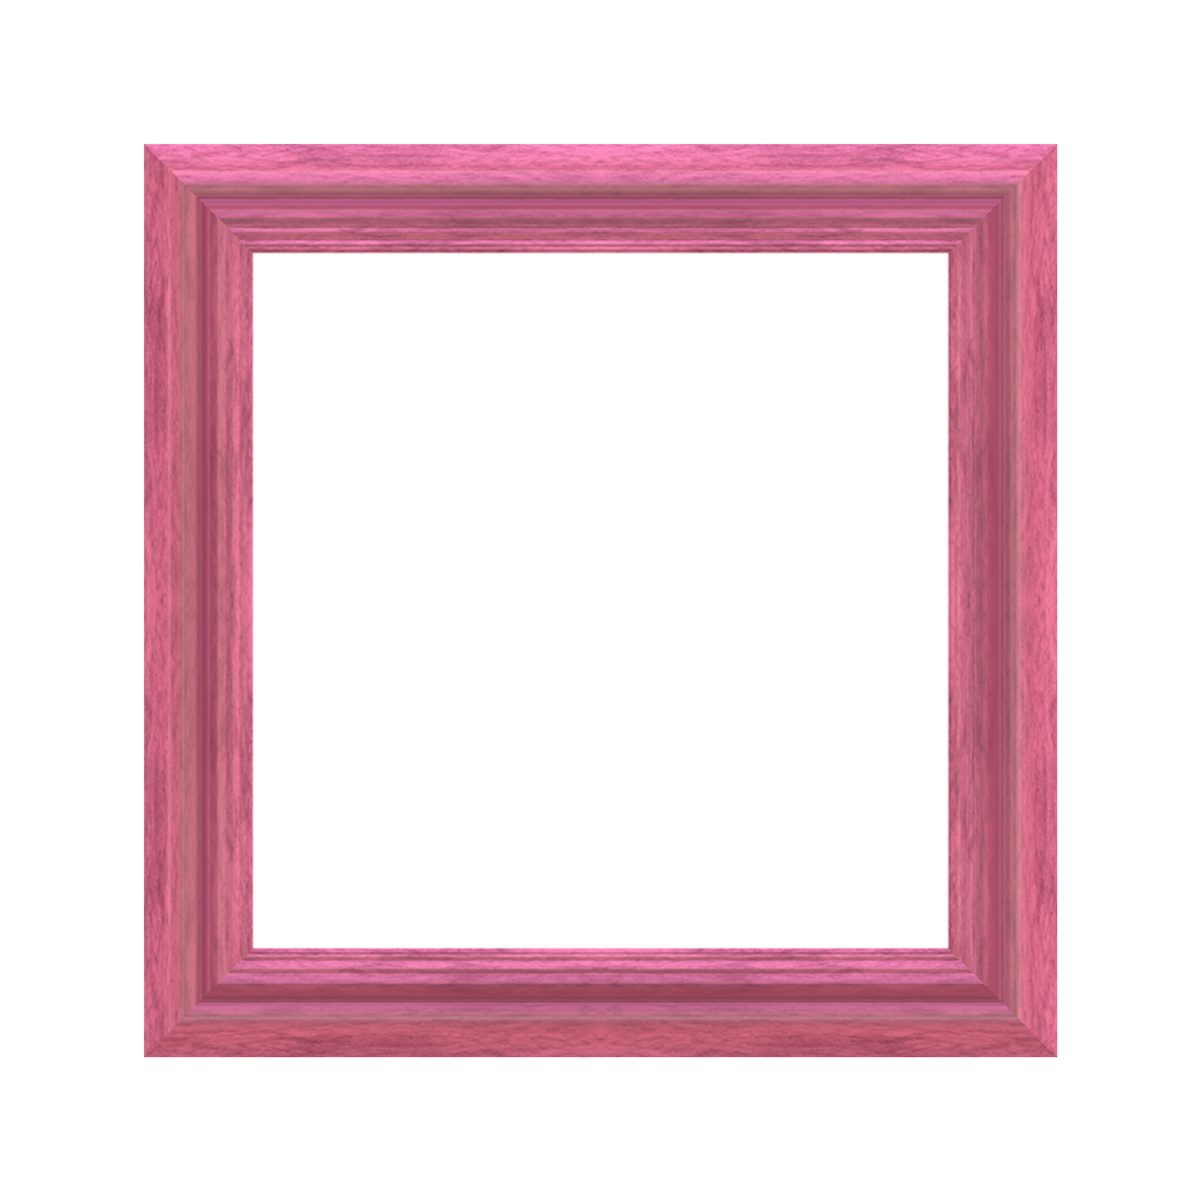 Our Favorite DIY Picture Frame Ideas